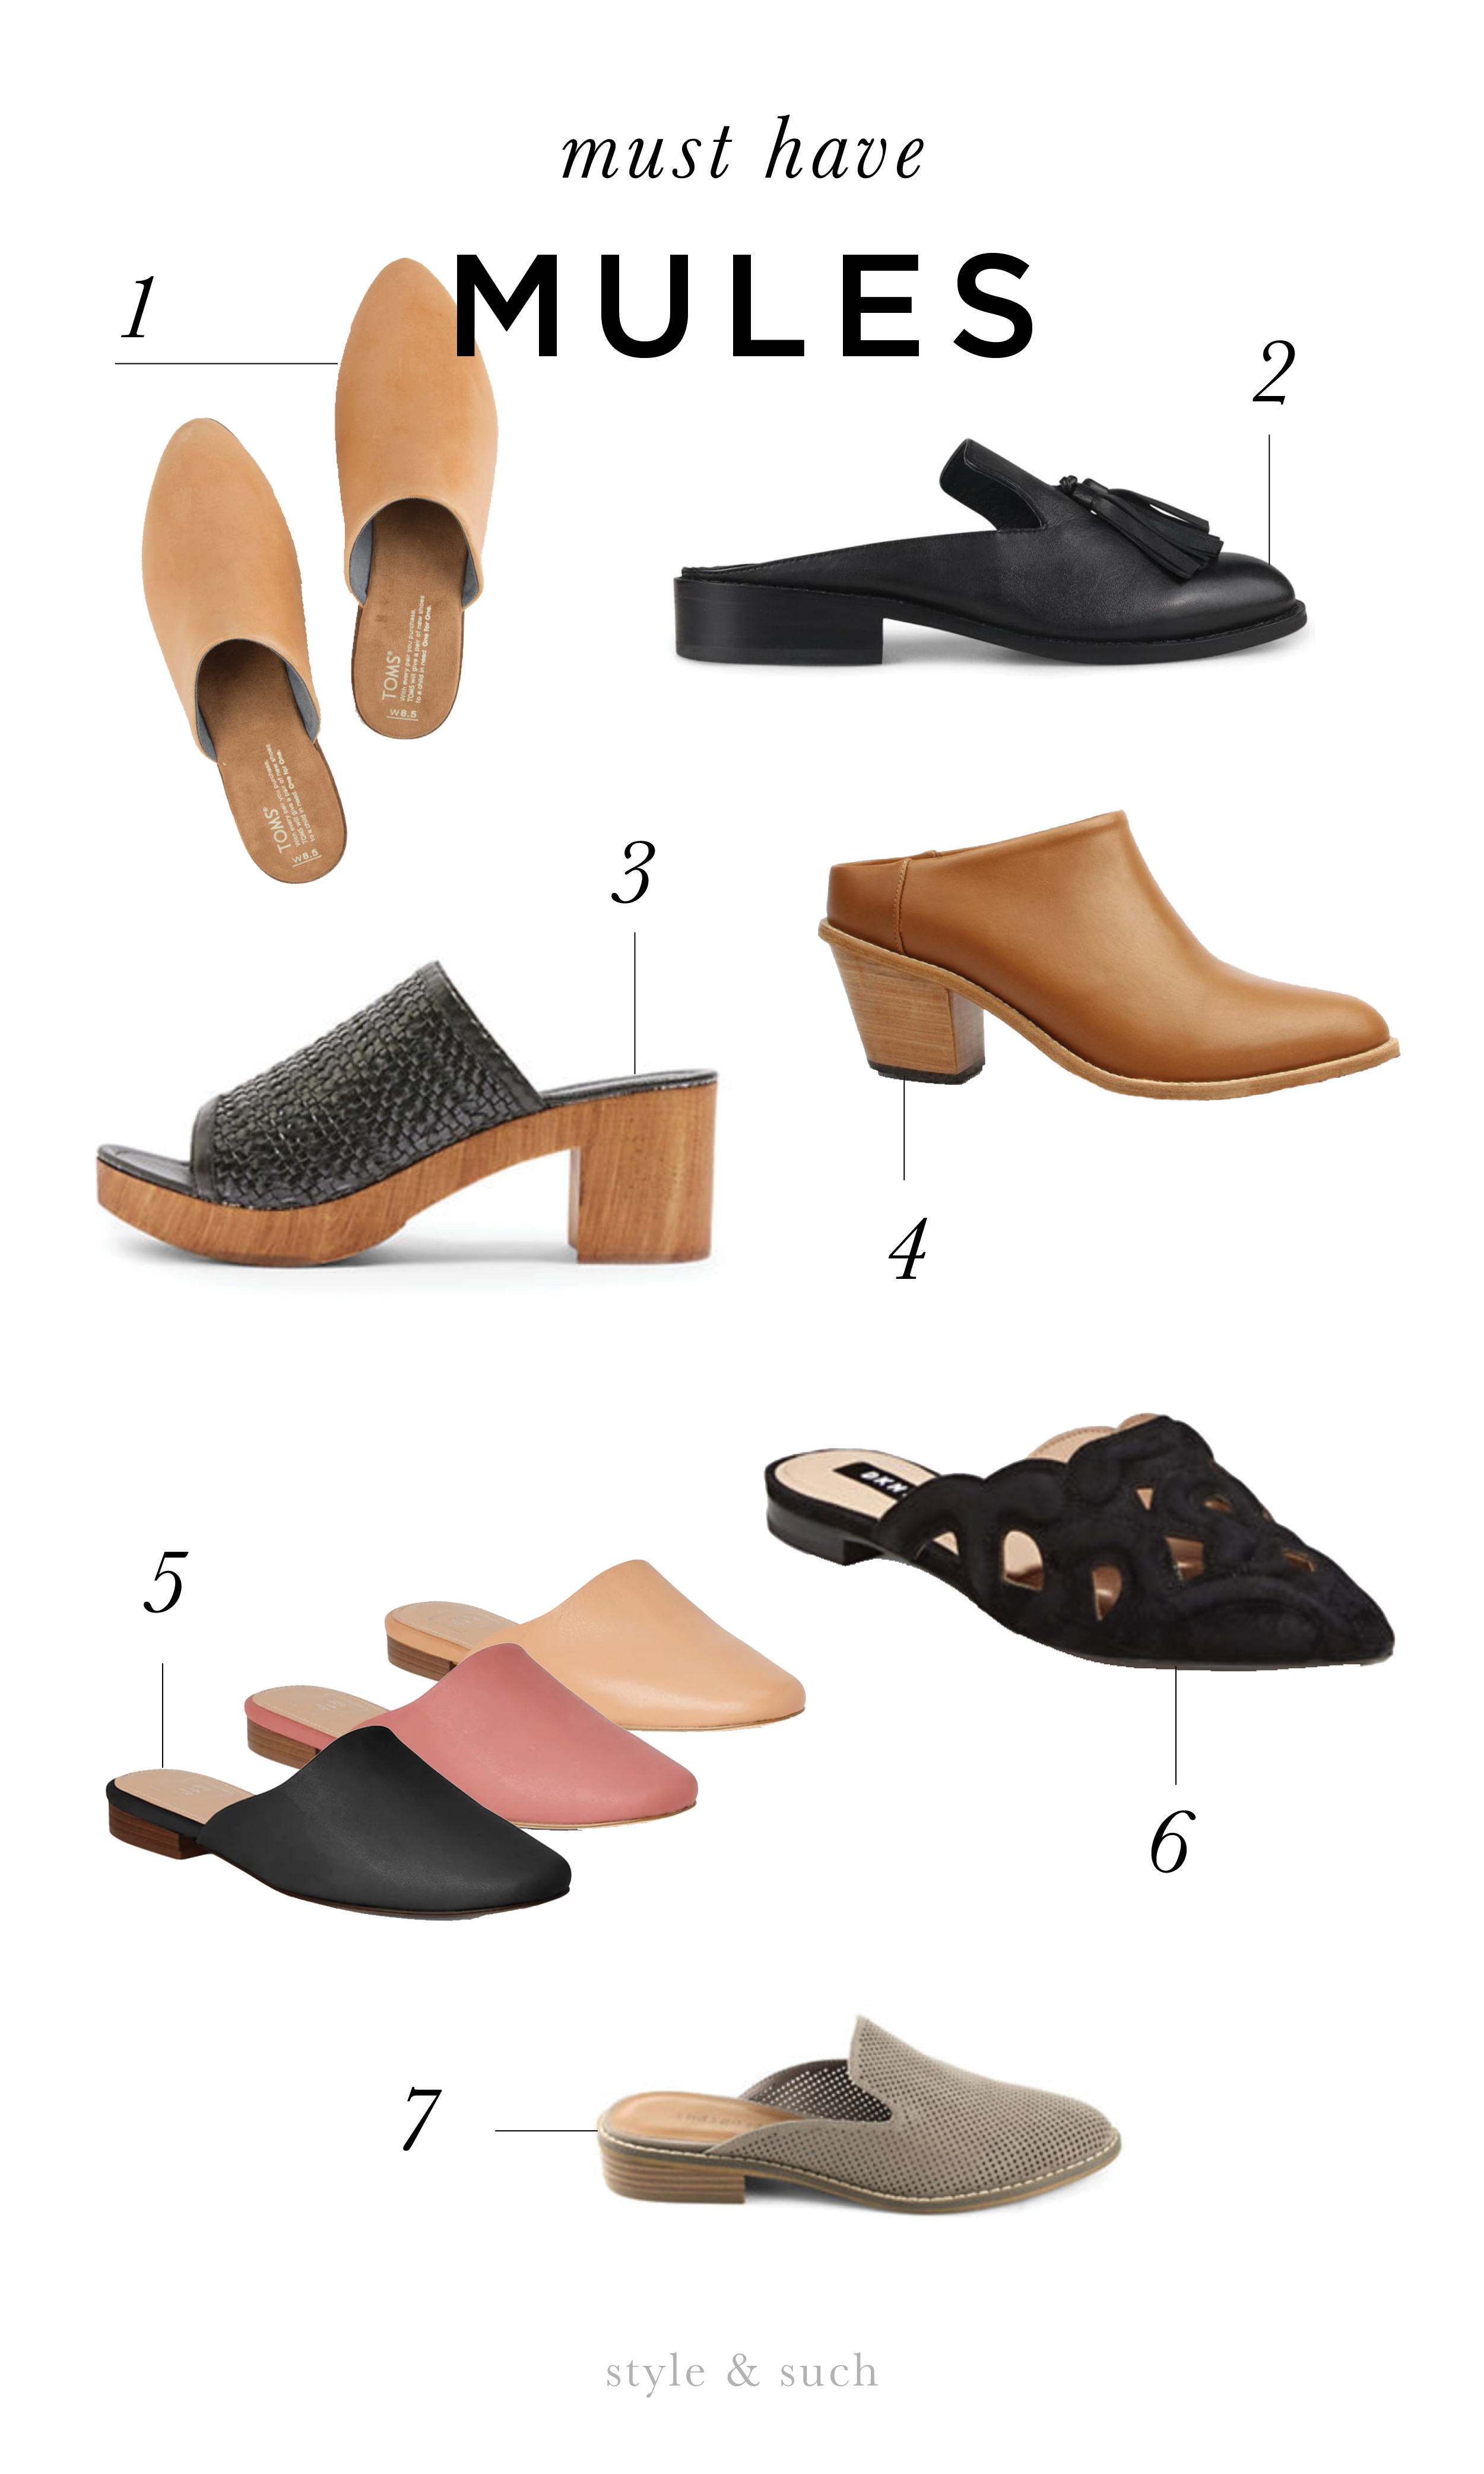 1.  Toms  ,Jutti Mules    2.  Wittner Shoes  , Jerrie    3.  TopShop  , Village Clogs    4.  Poppy Barley, Heeled Mule    5.  Gap, Flat Mules    6.  DKNY, Palace Slip-On Mules  7.  Indigo Road, Hayze Perforated Mules